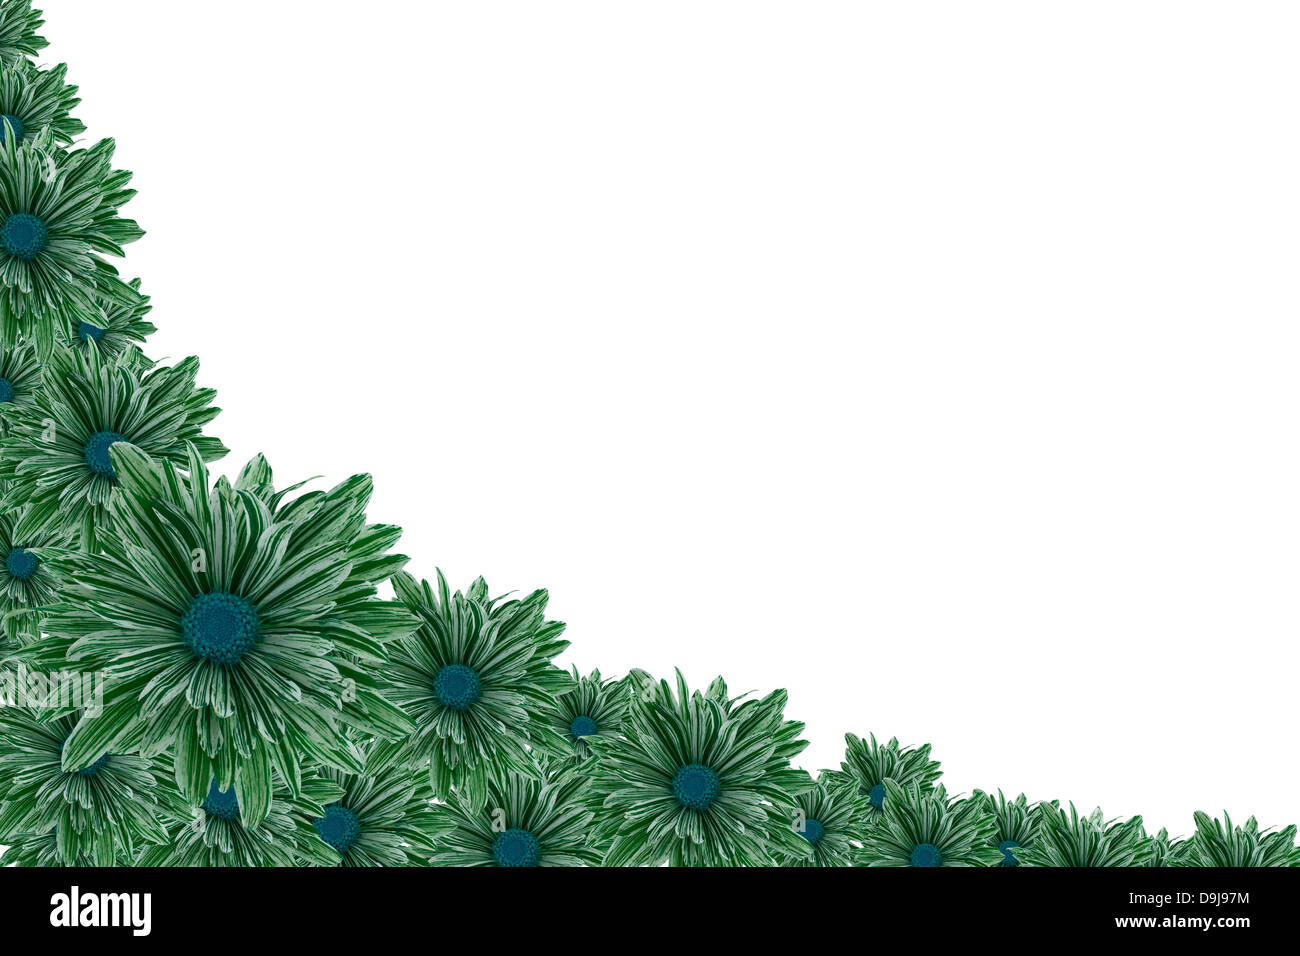 Green chrysanthemum border - Stock Image